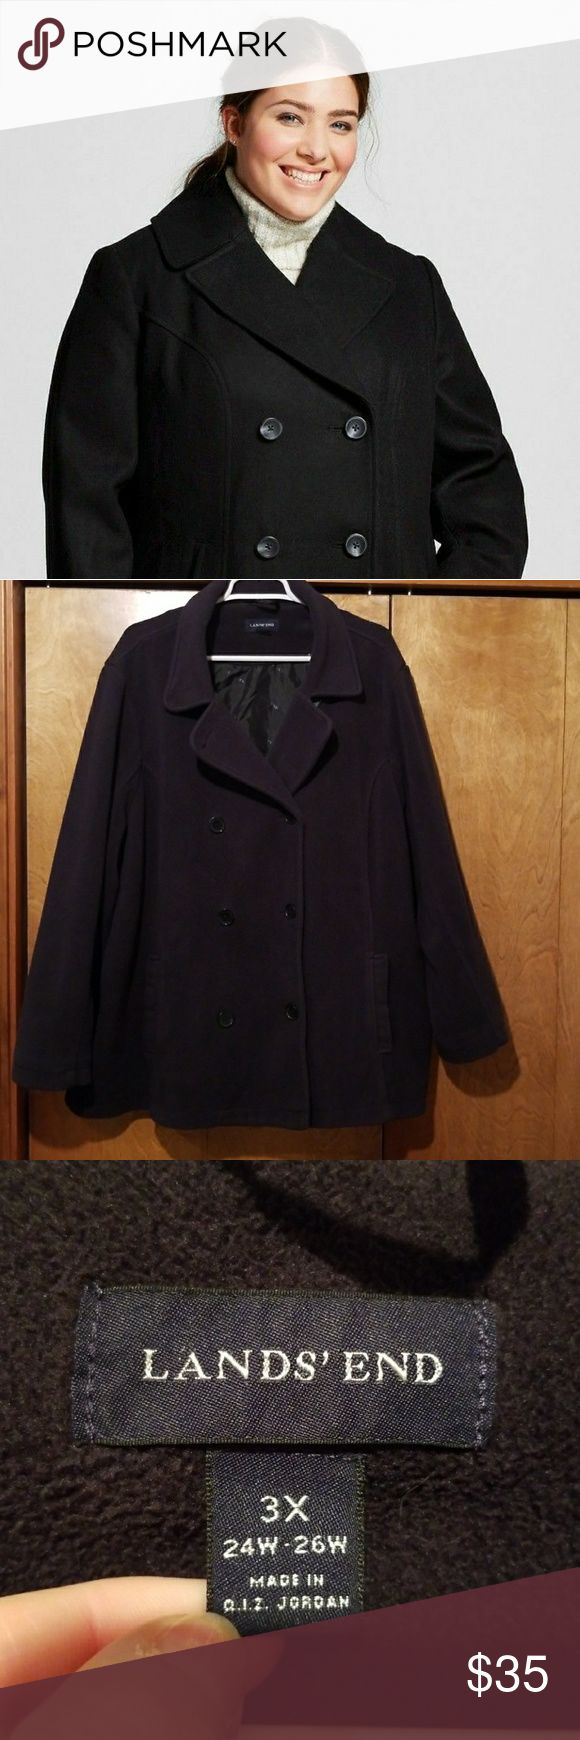 Black pea coat 3X Black fleecy pea coat, size 3X, 24-26 women's. No damage/holes.  Minor pilling, not noticeable.  Nice medium weight coat, great to layer.  2 pockets, fully lined. Bust 60 Length 32 No trades. Lands' End Jackets & Coats Pea Coats